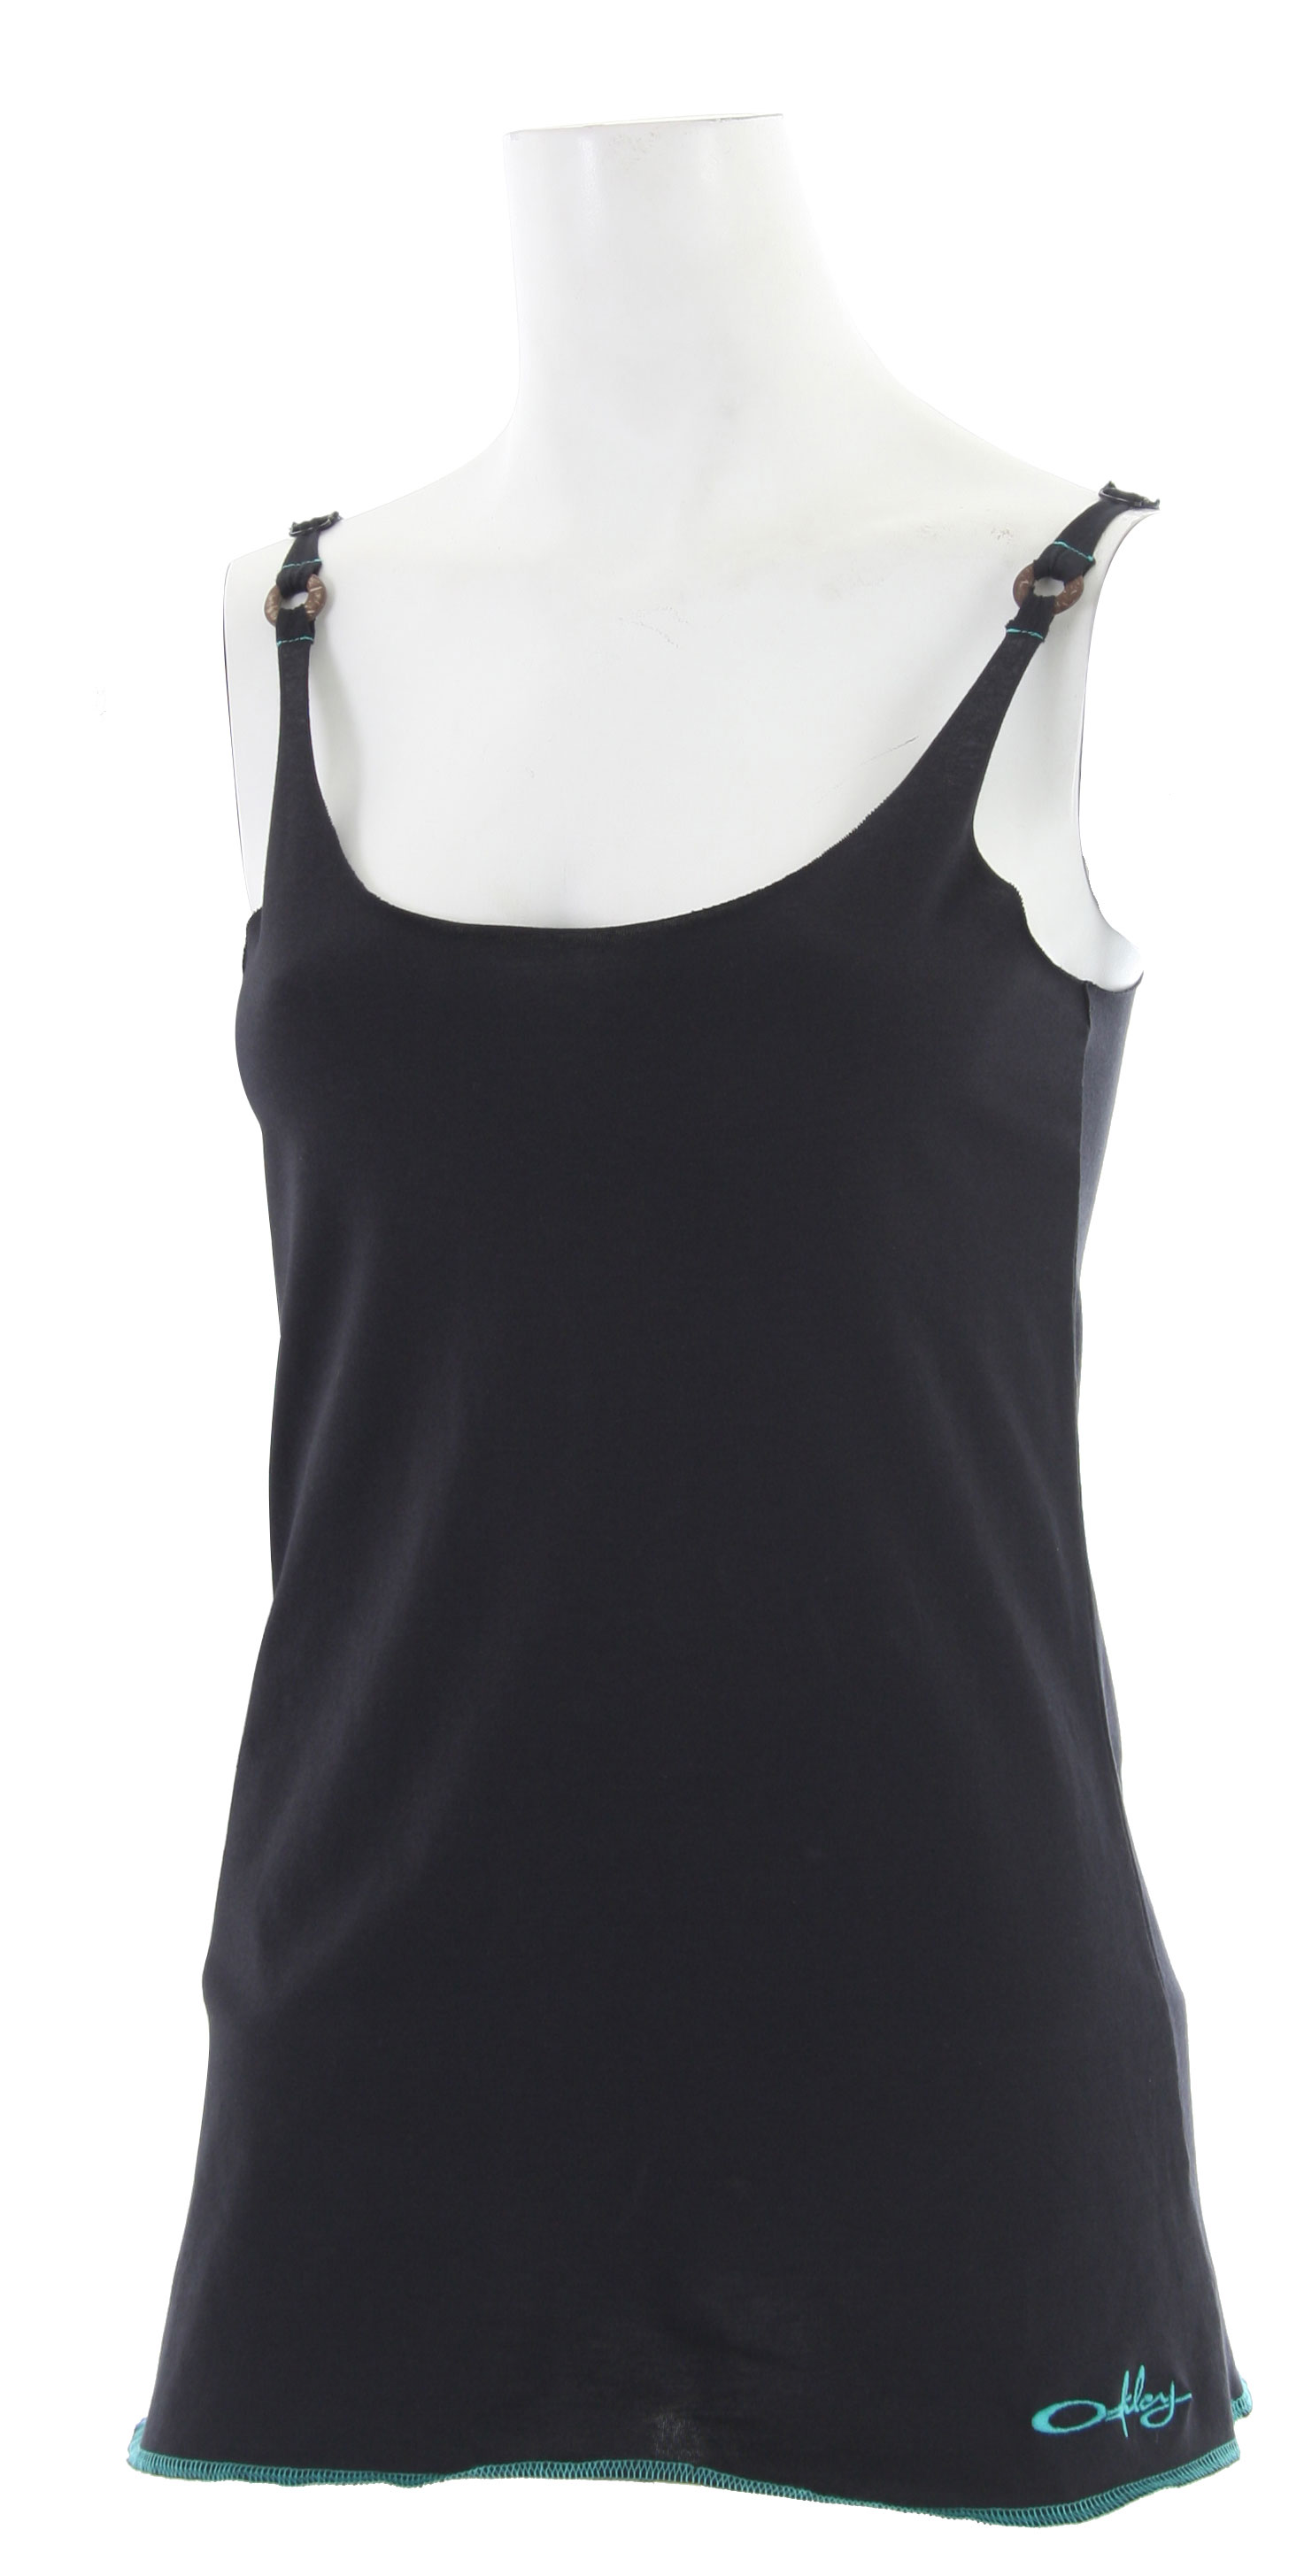 Surf Key Features of the Oakley Slider Tank Top: Solid color tank top with wrapped ring trim Adjustable strap length Rounded U neck Raw edge detail Embroidered logo on front - $15.95